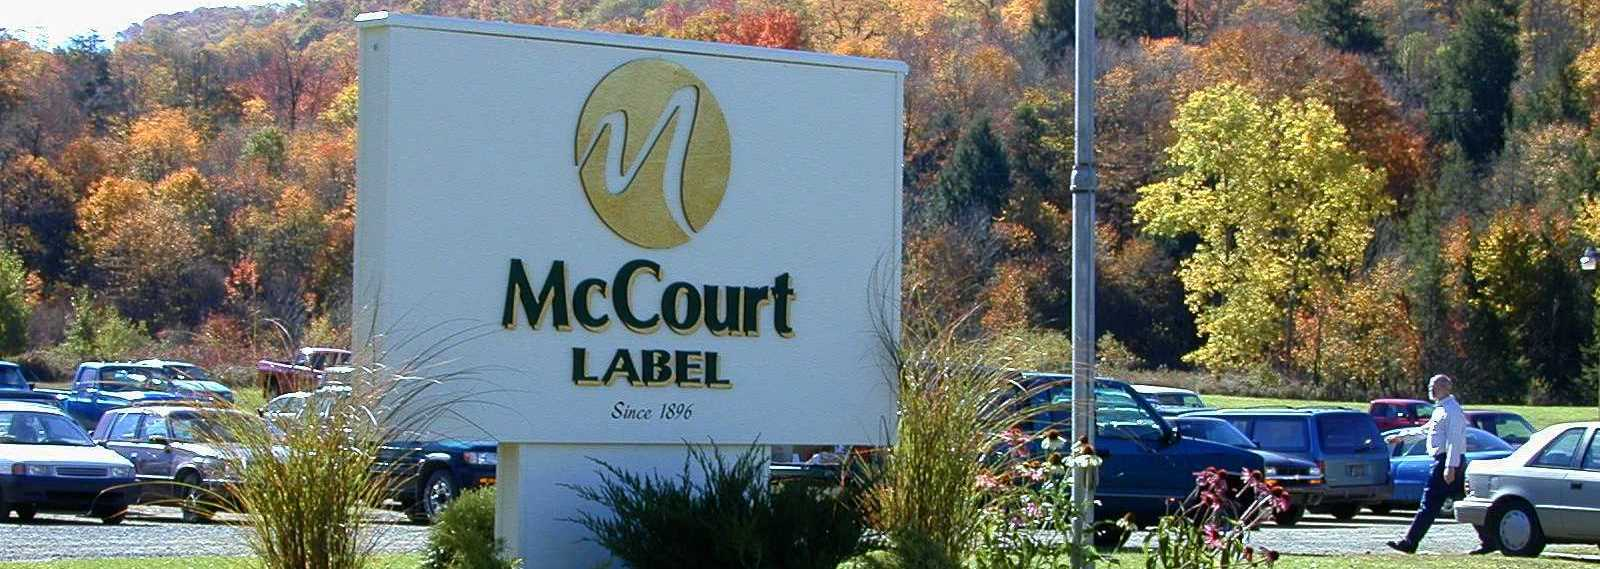 contact mccourt label company site